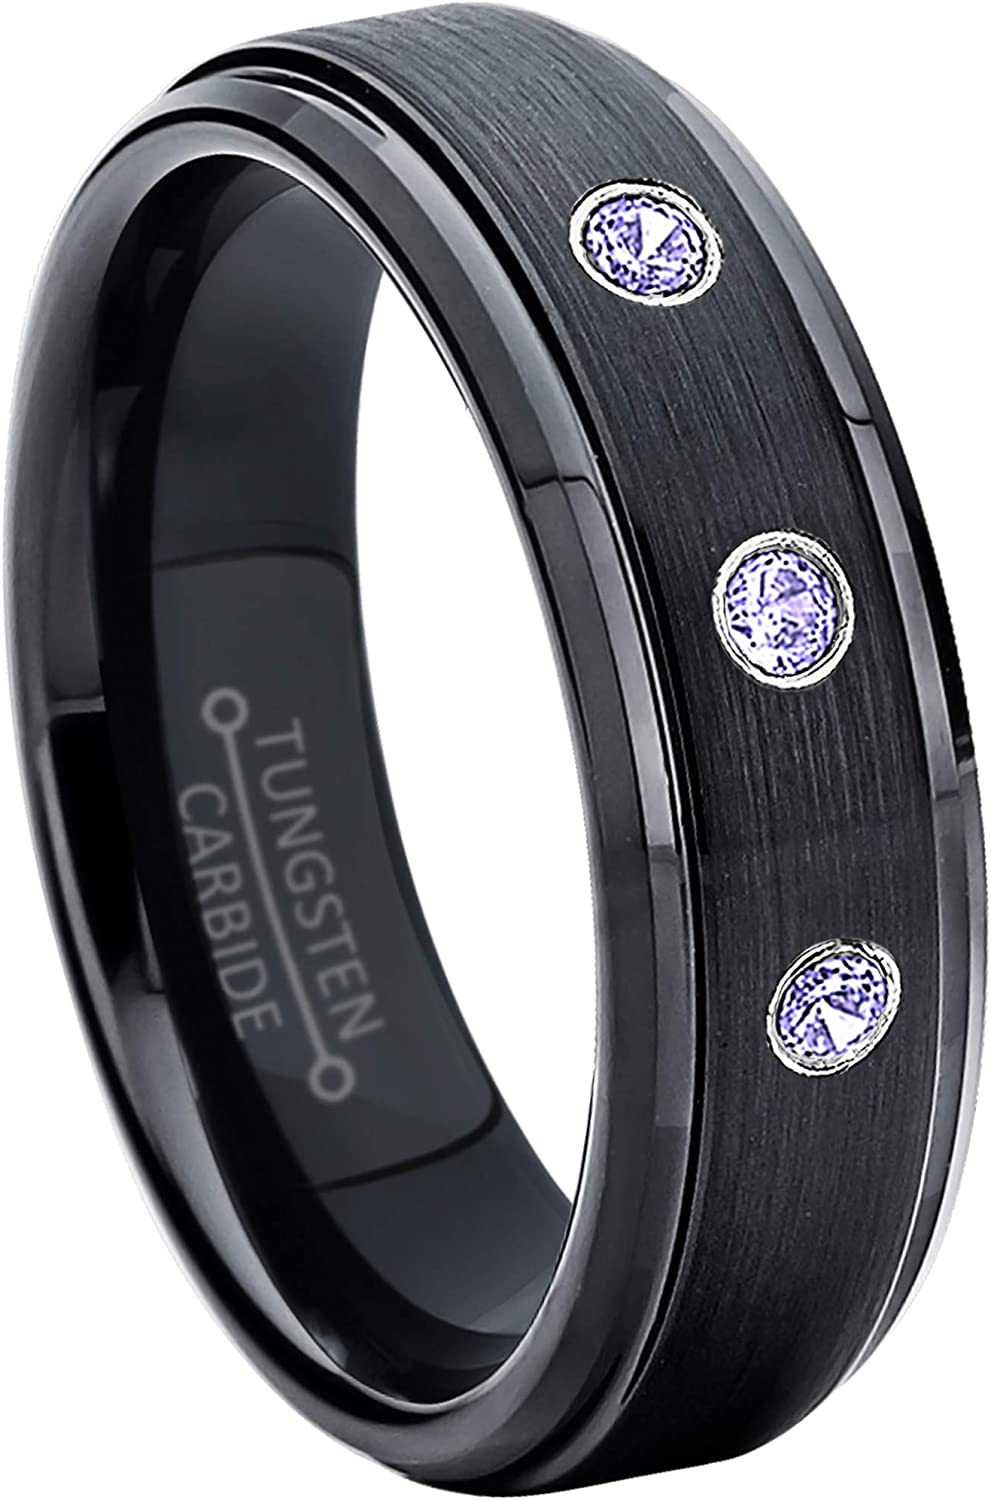 Jewelry Avalanche 6MM Brushed Black IP Stepped Edge Tungsten Carbide Wedding Band December Birthstone Ring 0.21ctw Tanzanite 3-Stone Tungsten Ring